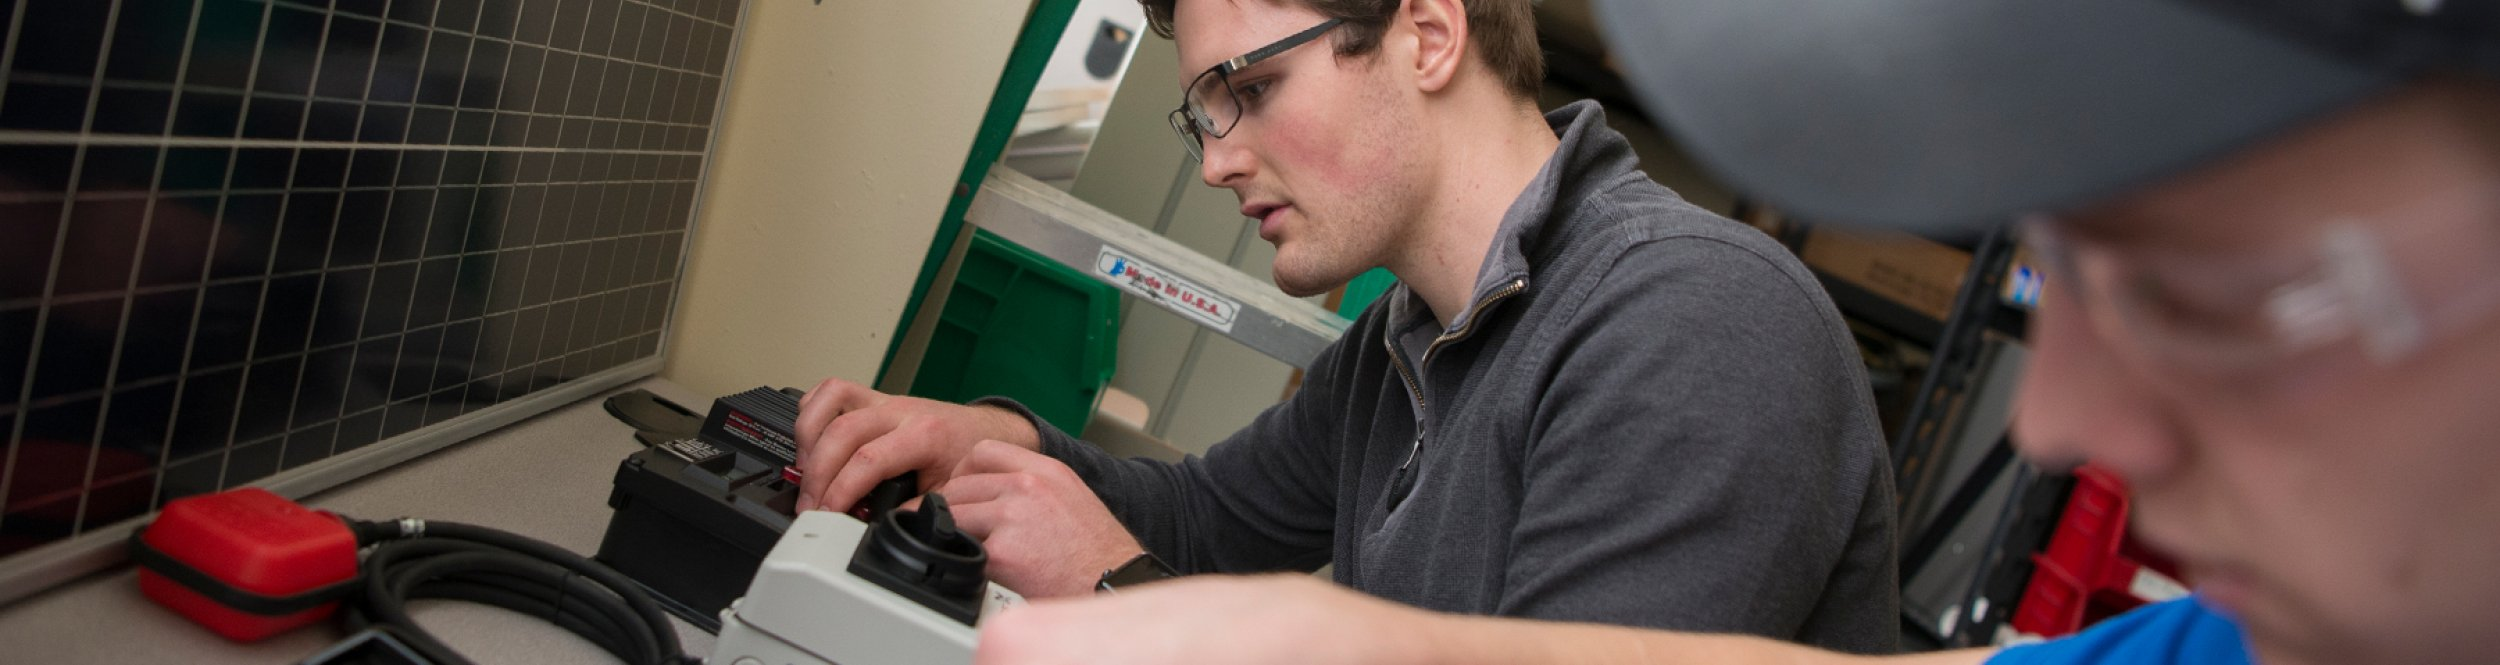 A student looks at a machine.